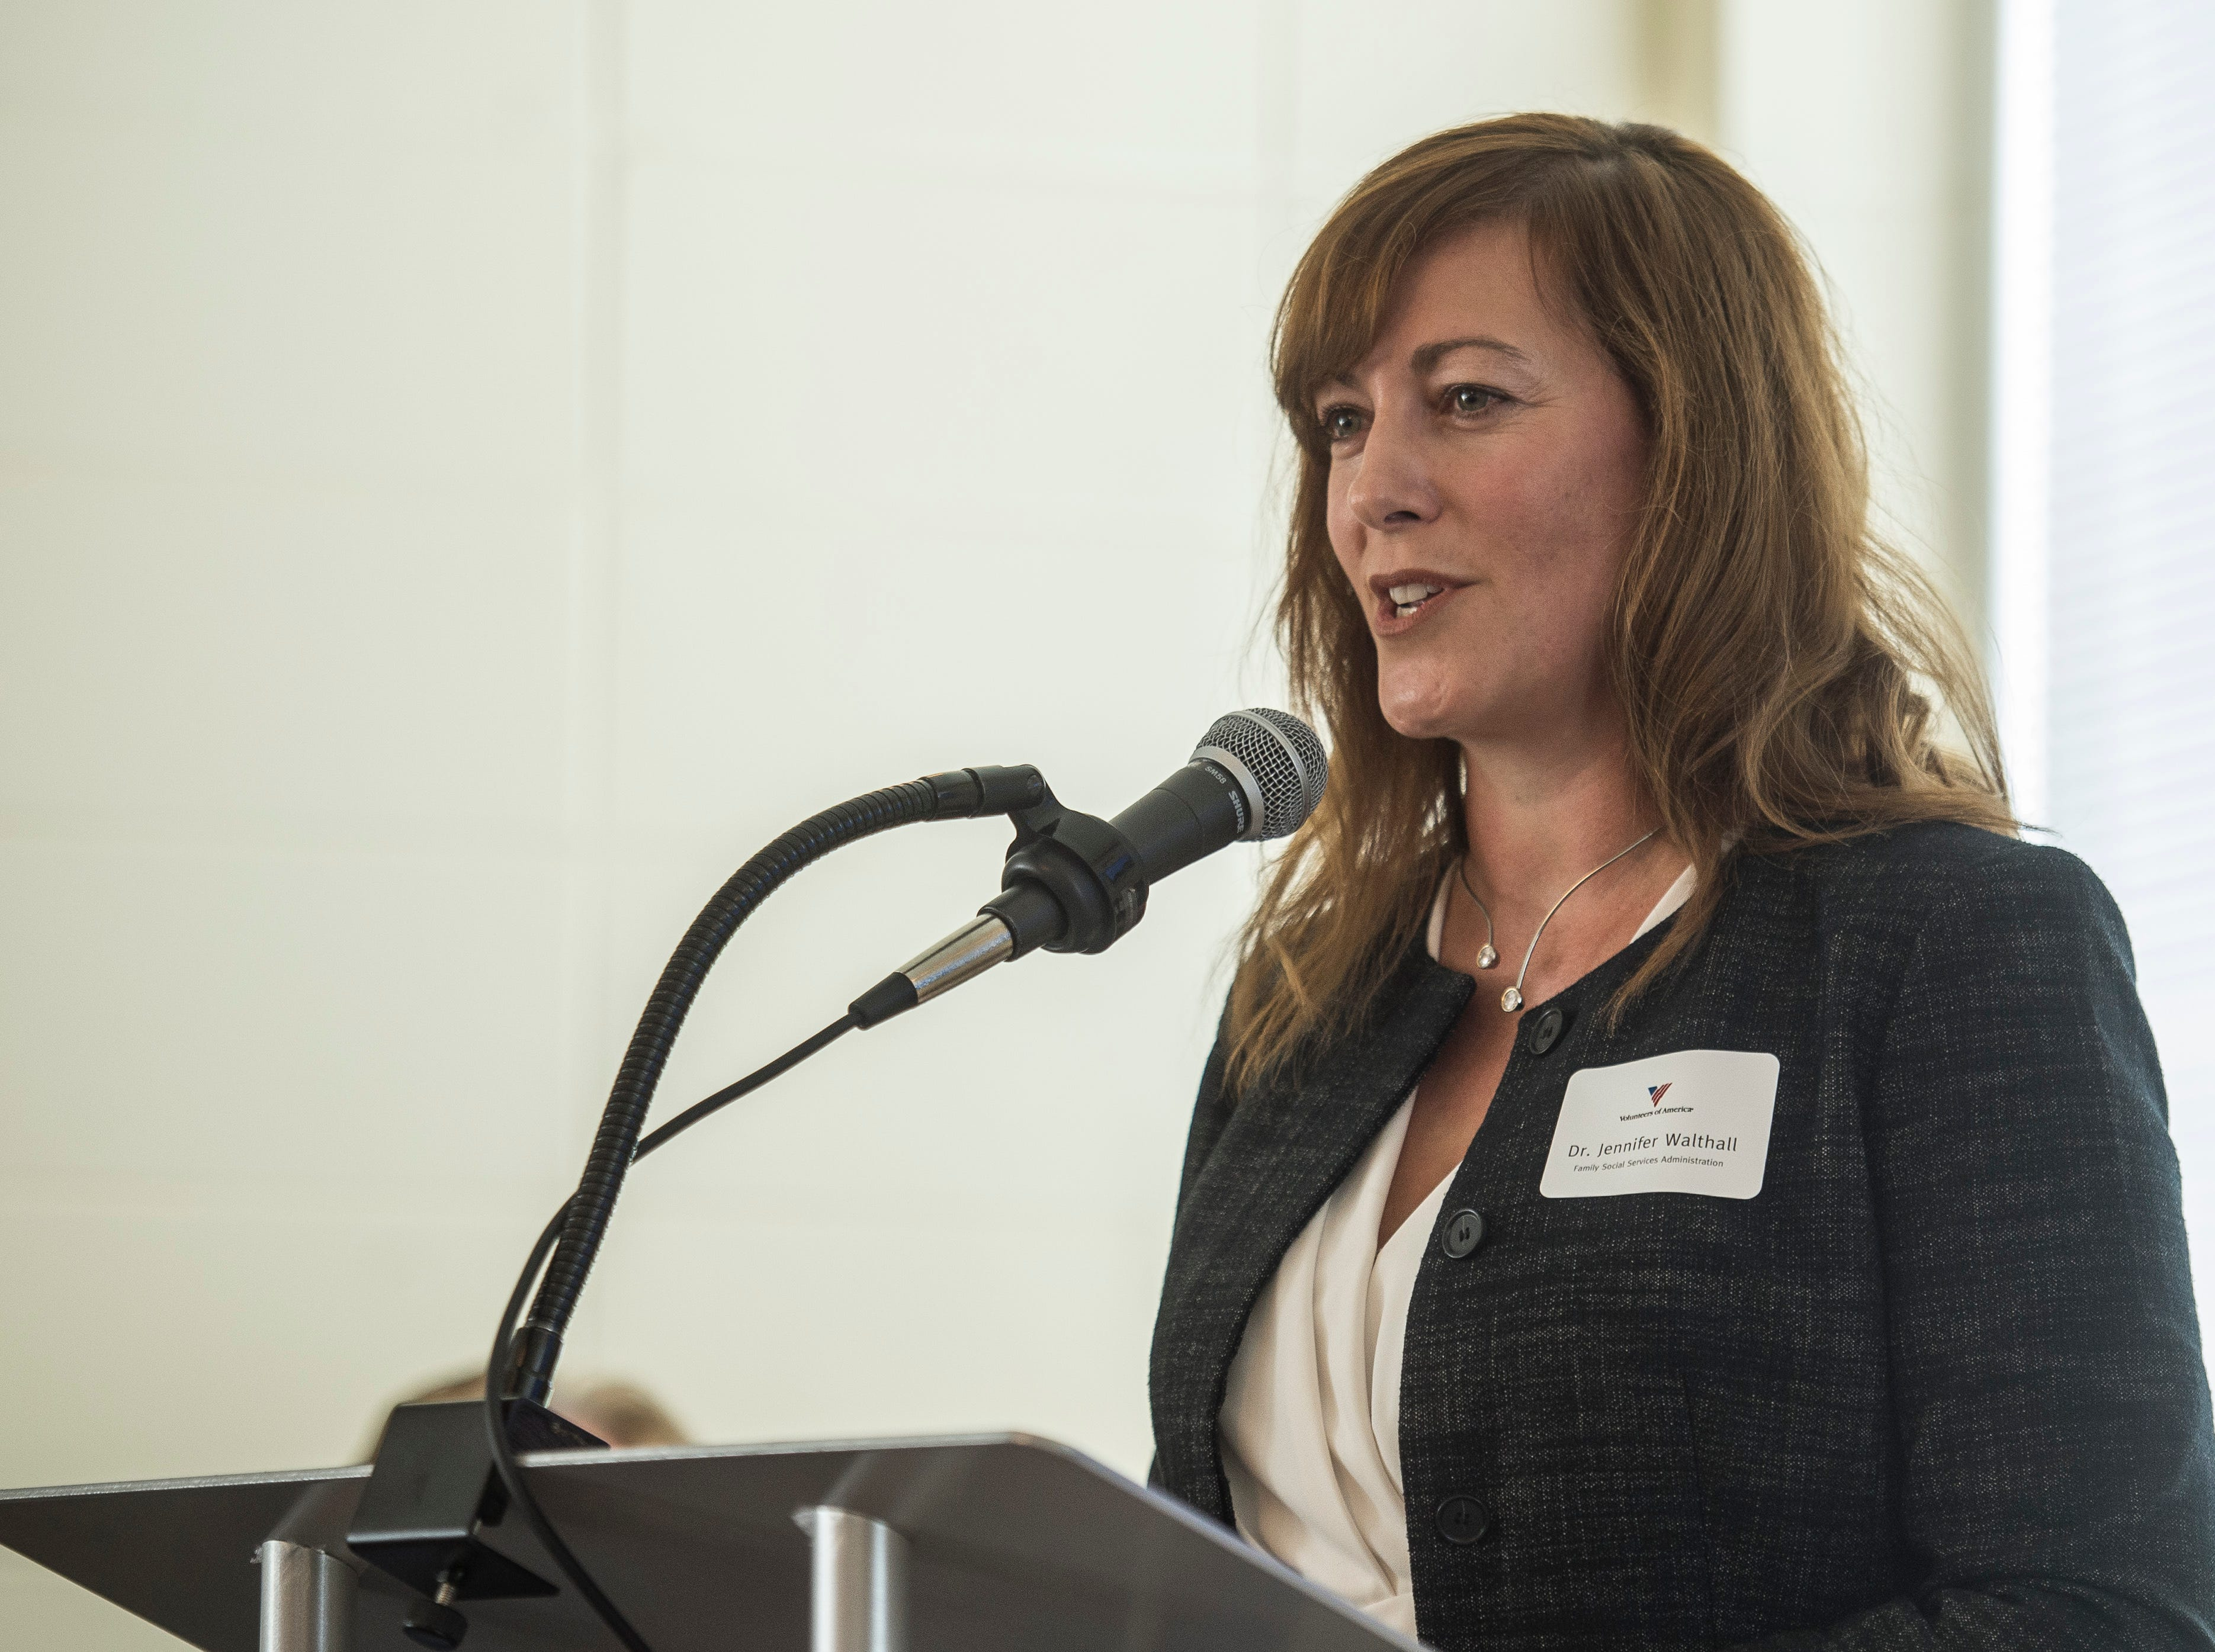 Family and Social Services Administration head Jennifer Walthall speaks during a news conference celebrating the opening of the Winchester House, a new drug treatment facility for women, in Winchester, Ind., on Wednesday, Aug. 1, 2018.